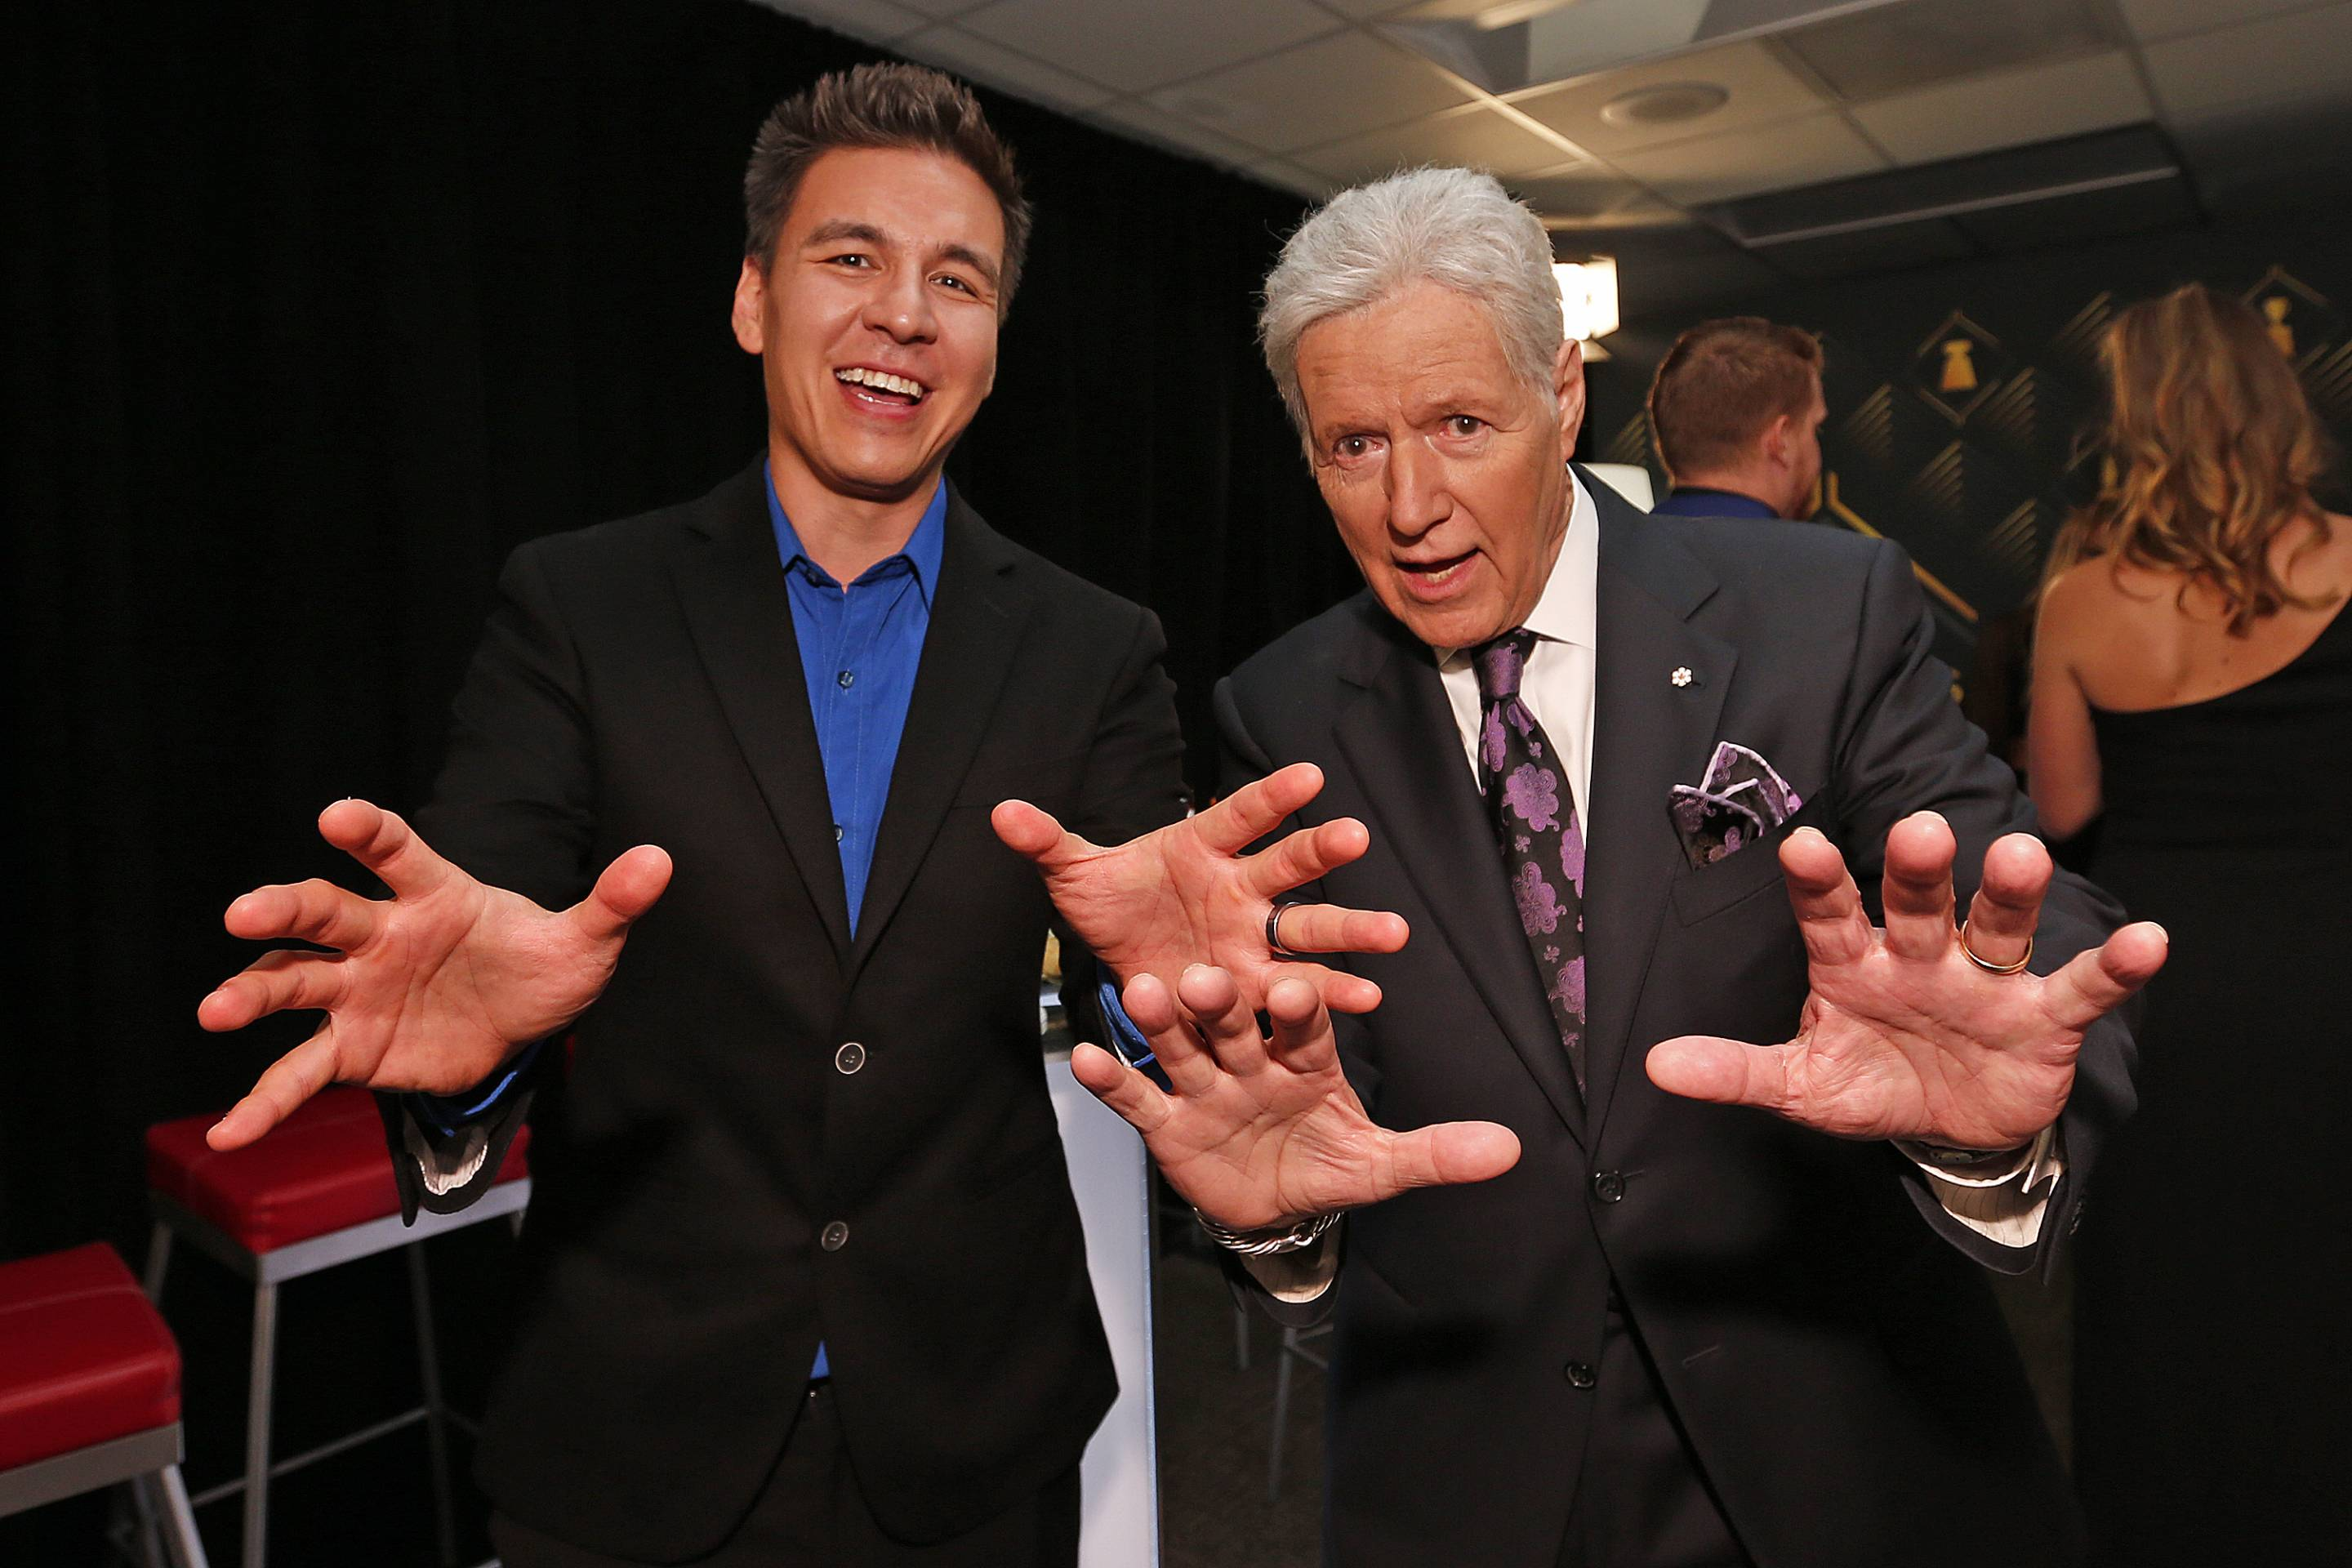 Alex Trebek and James Holzhauer